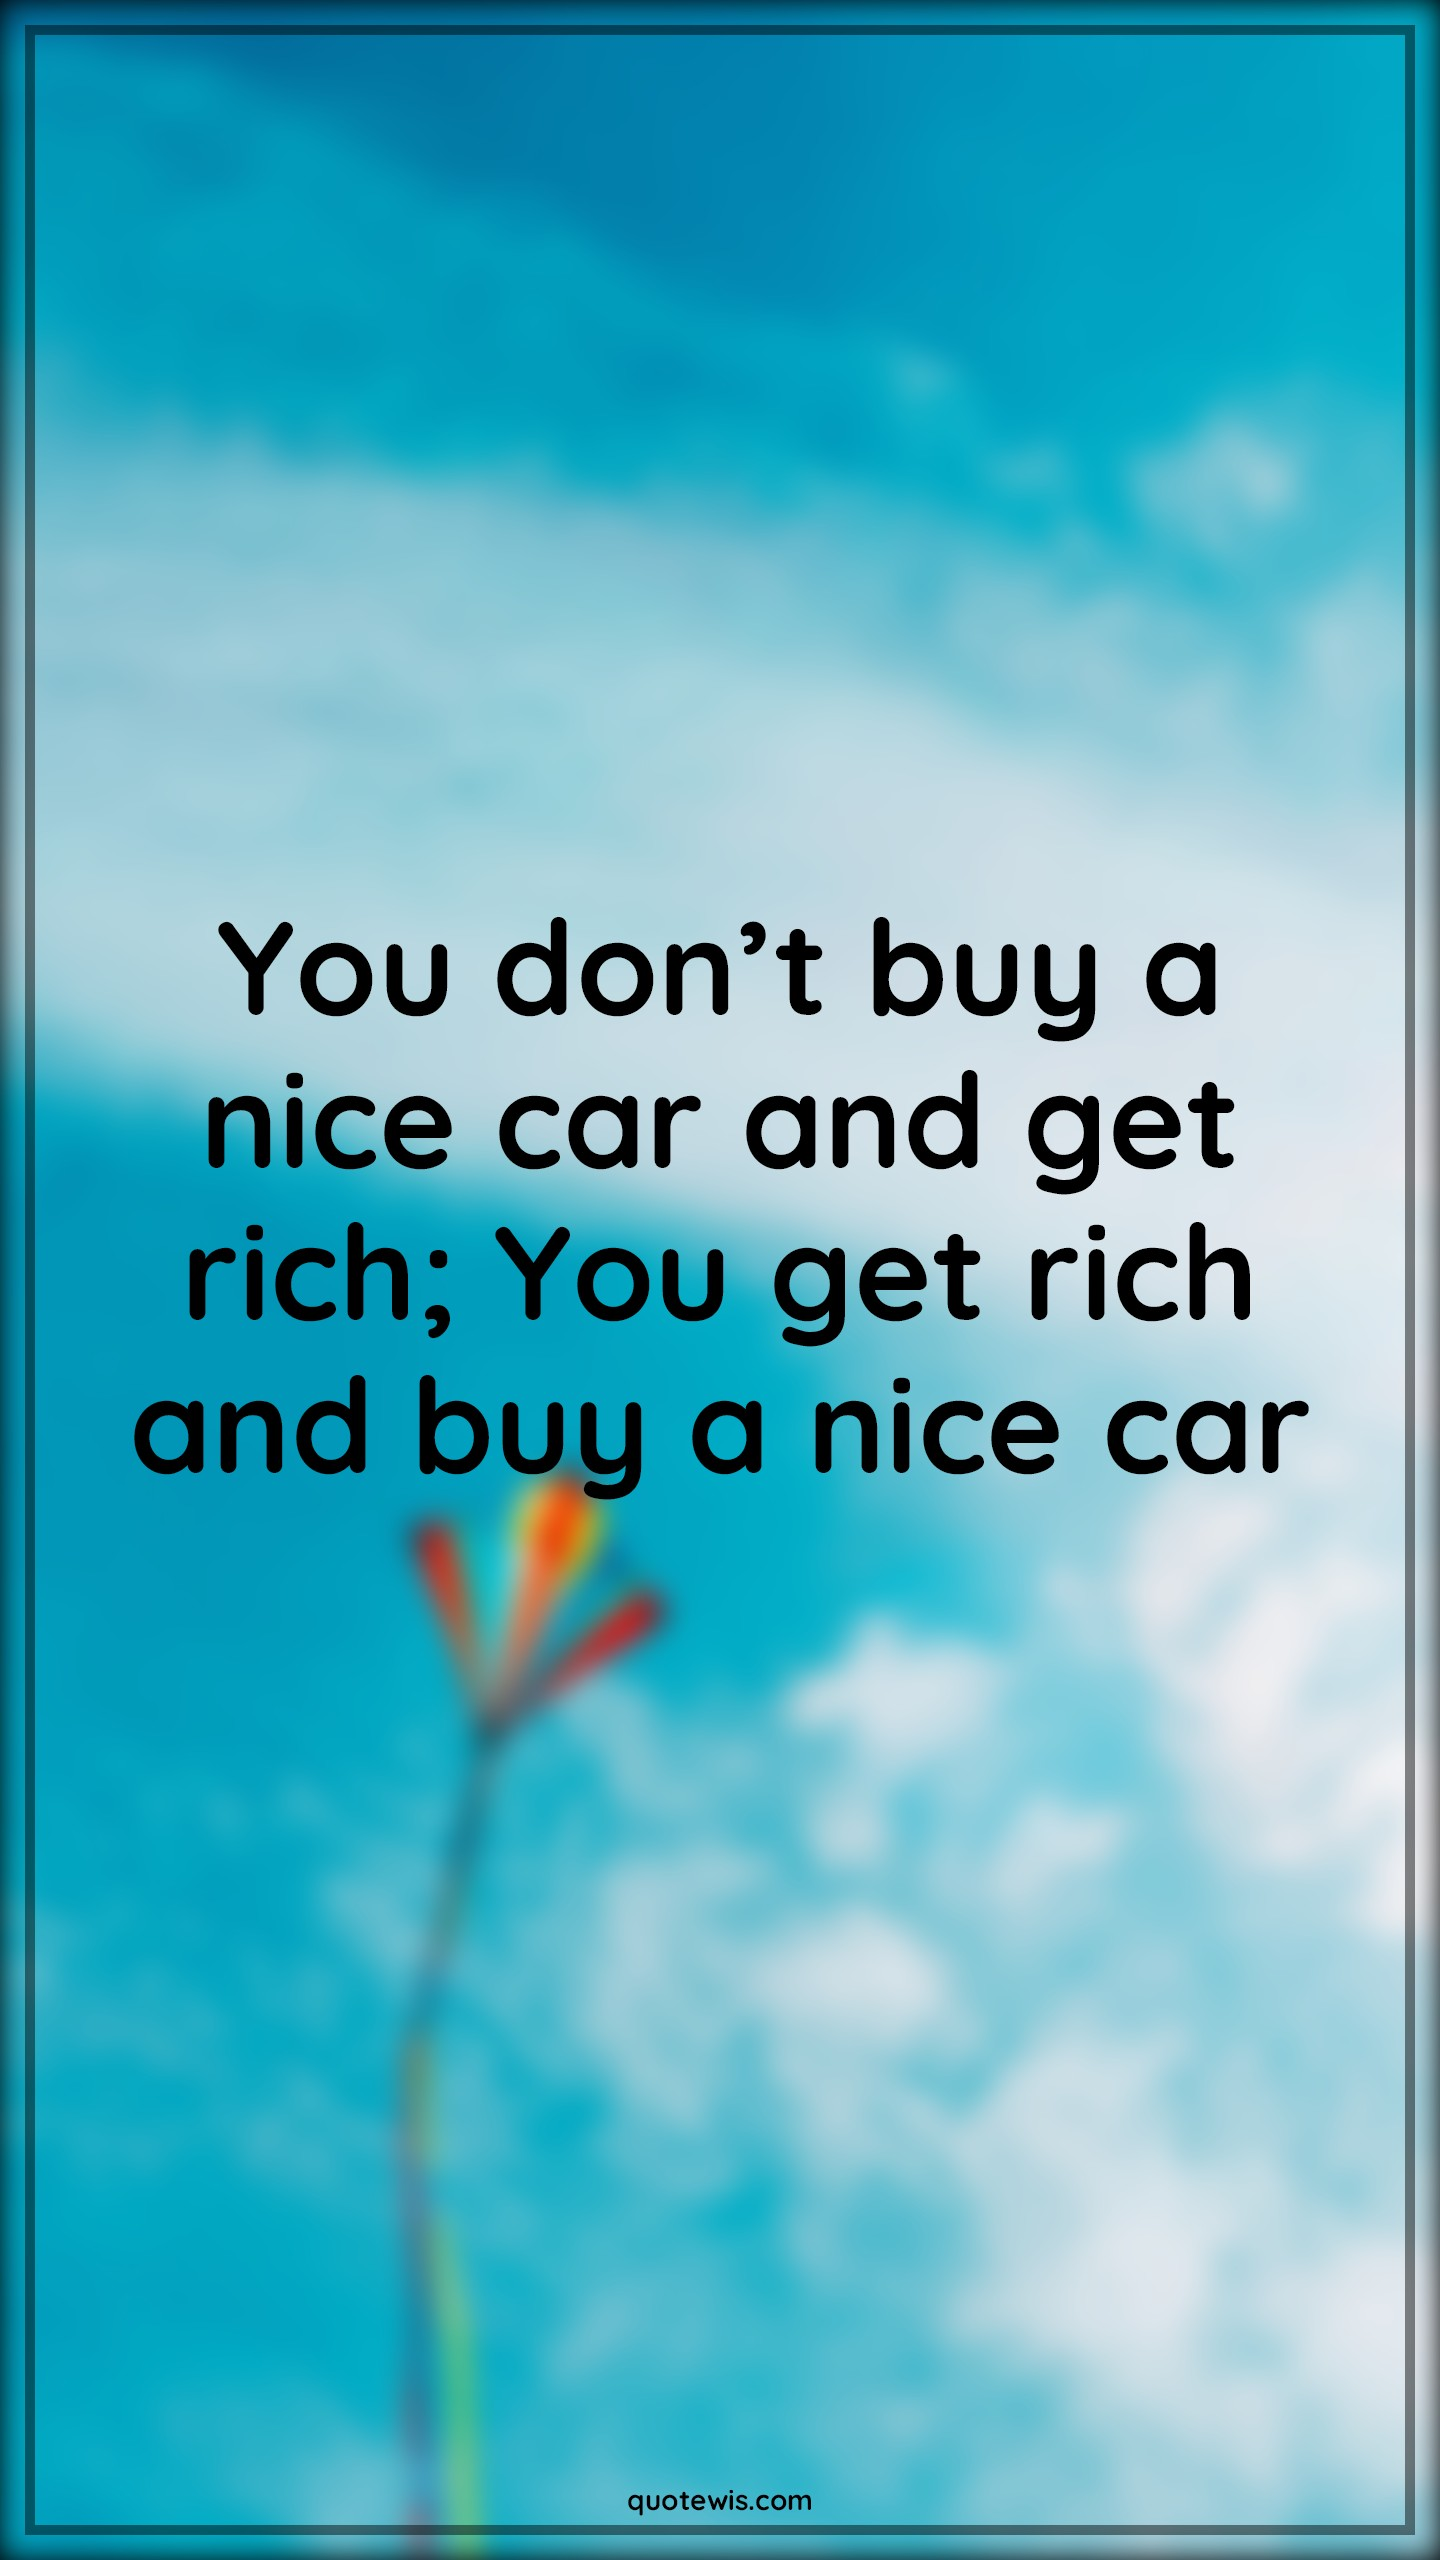 You don't buy a nice car and get rich; You get rich and buy a nice car